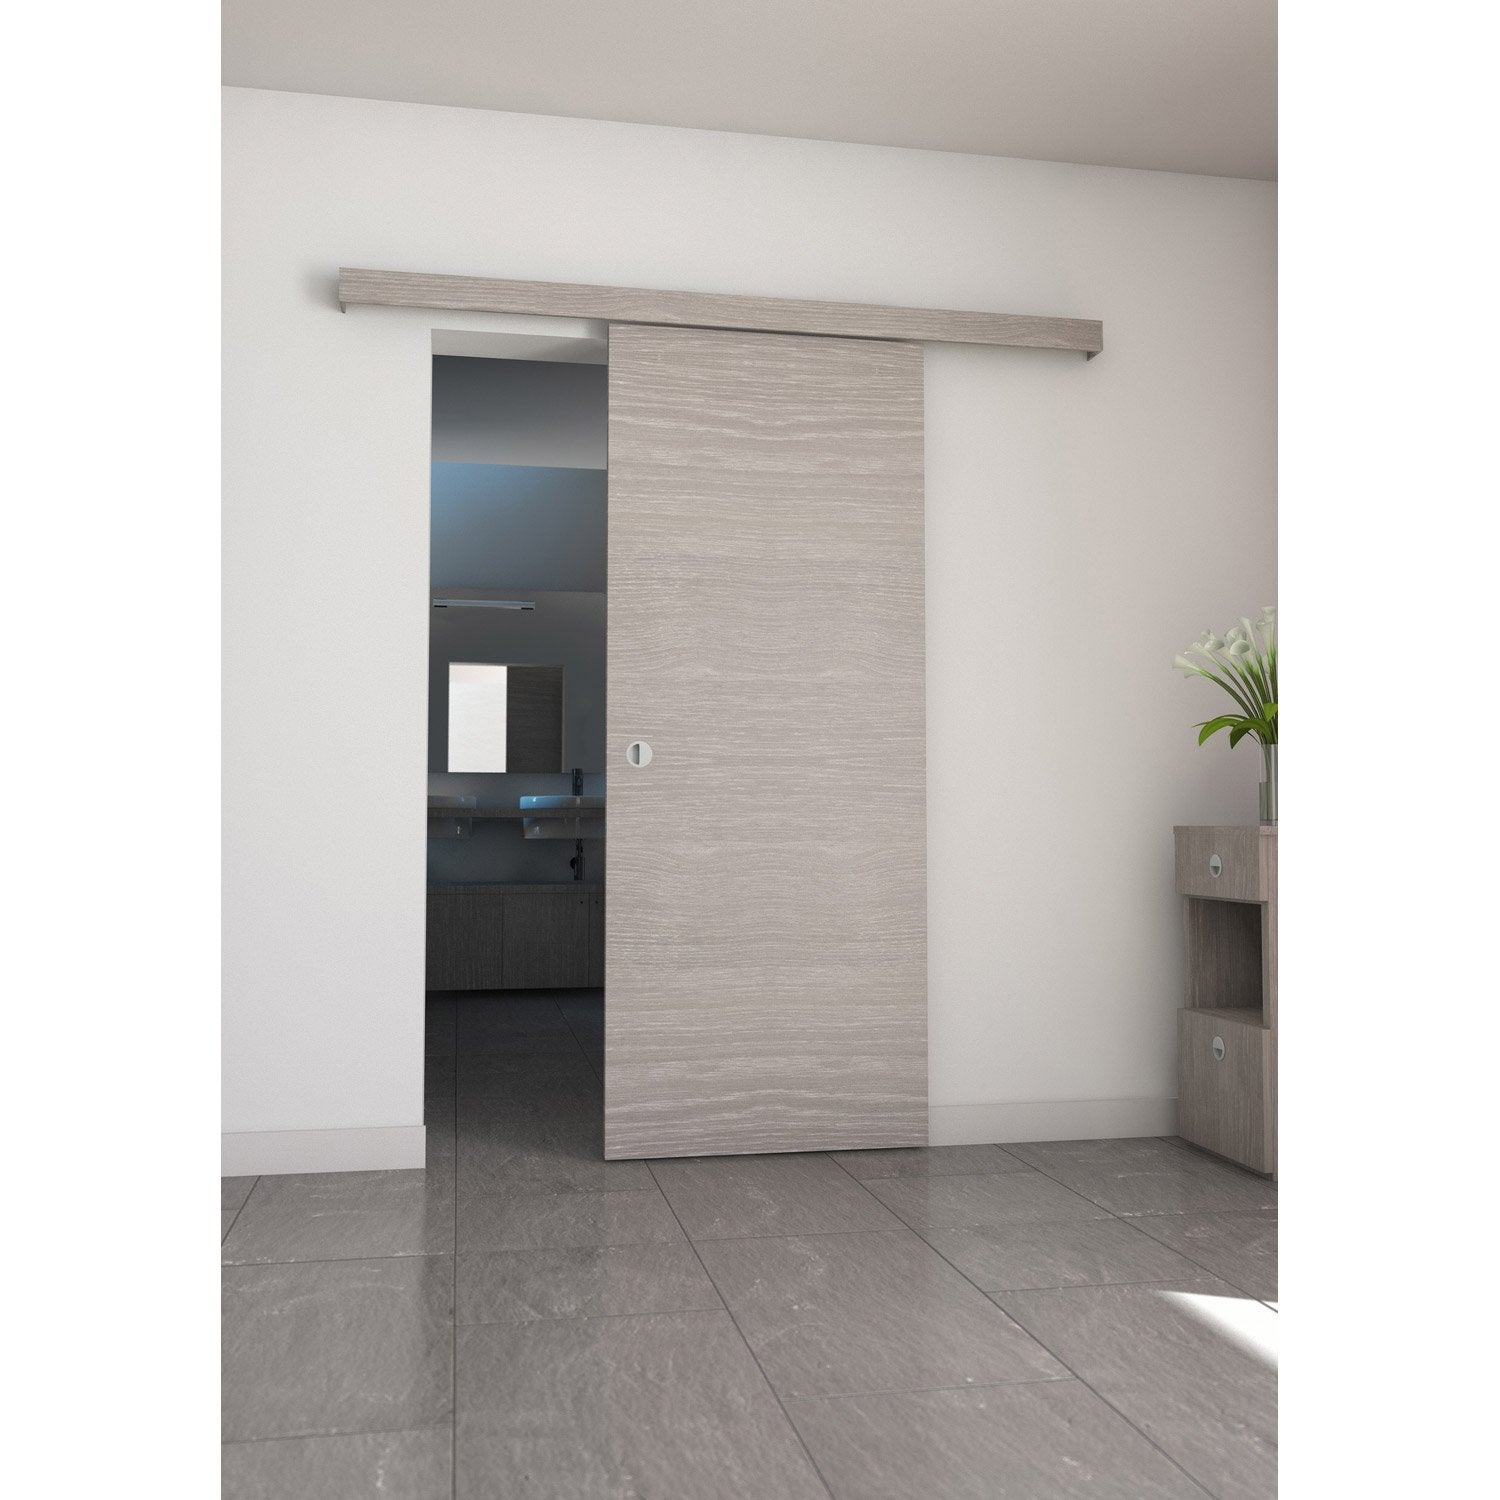 Ensemble porte coulissante coulicool mdf rev tu aluminium for Porte de salon a galandage